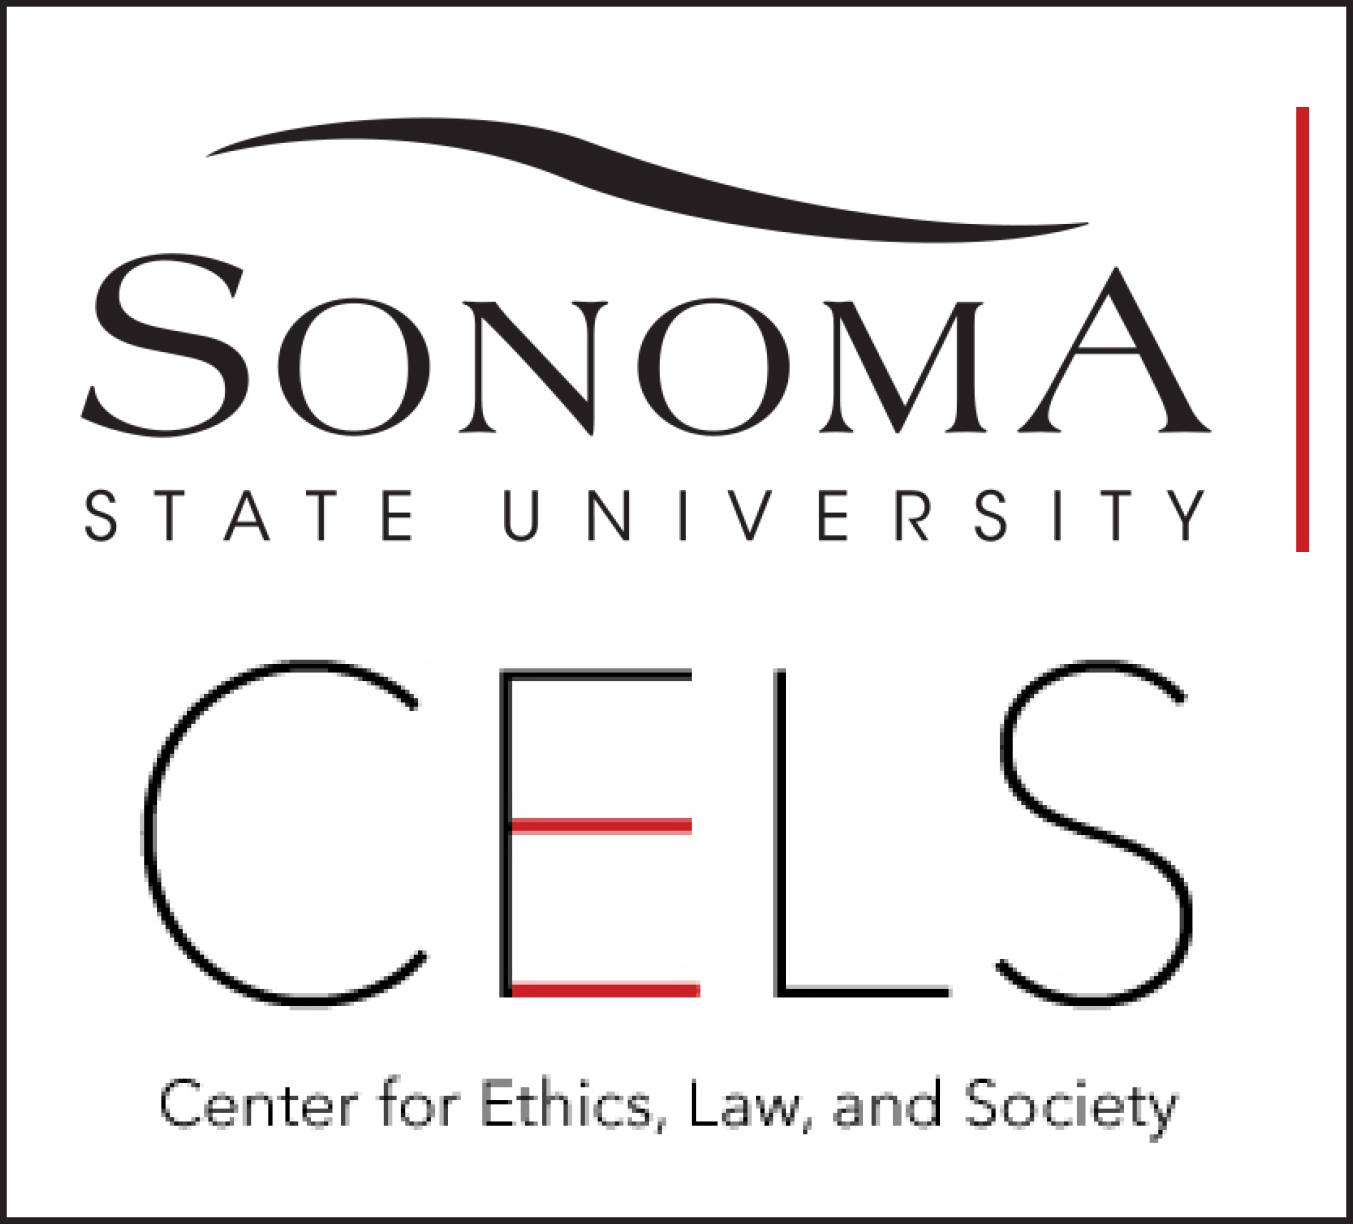 Center for Ethics, Law, and Society